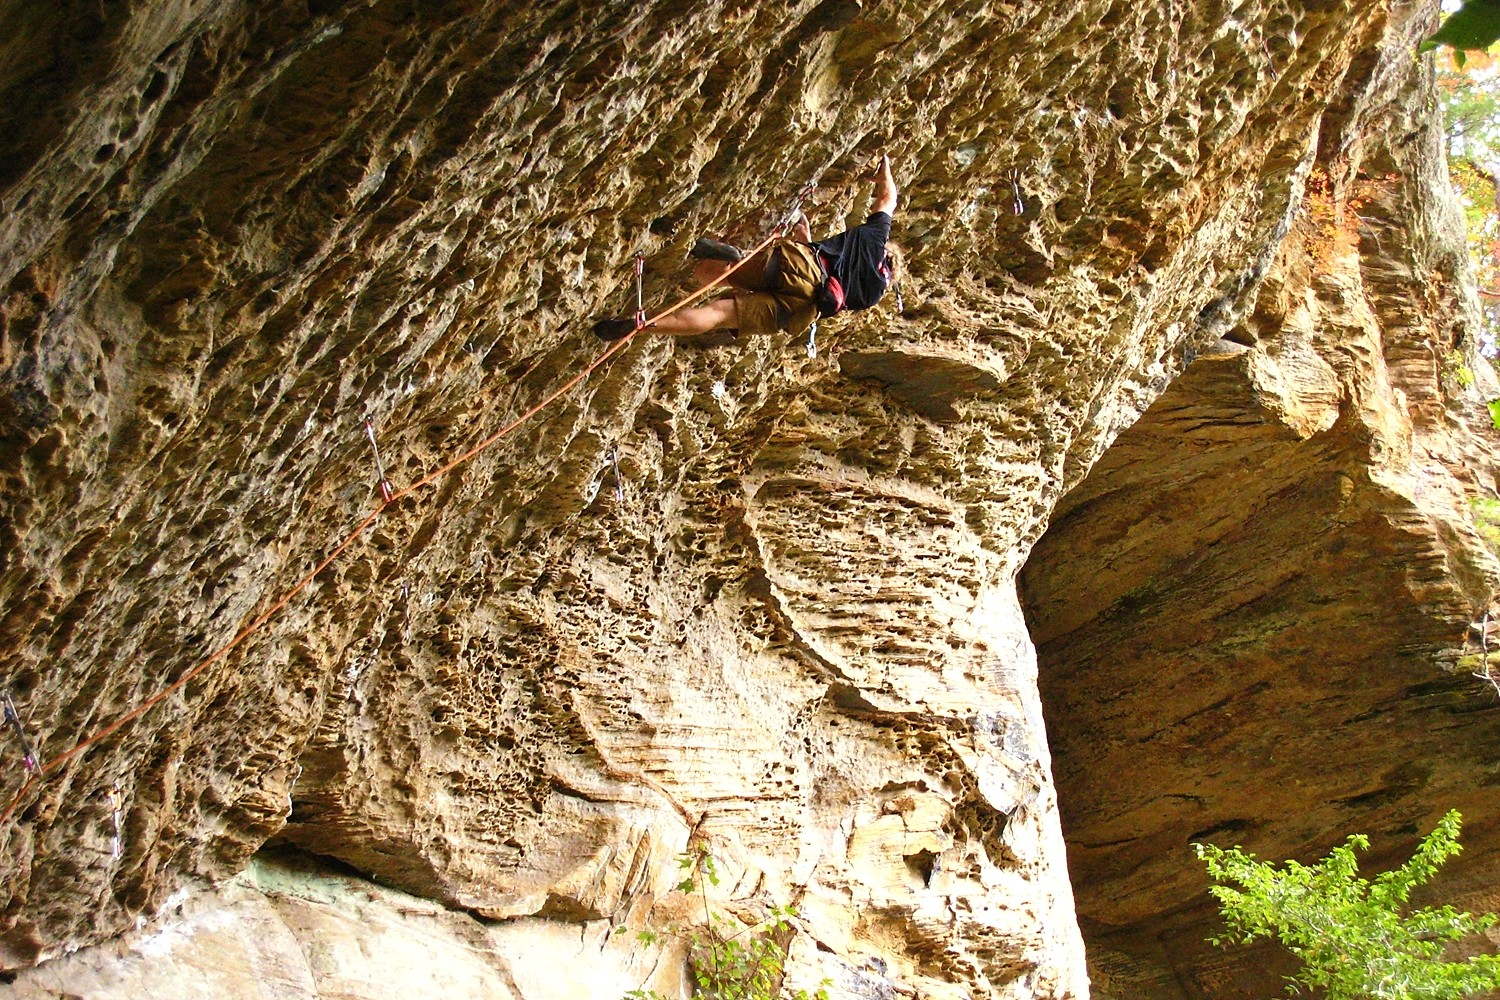 Seven Smoke (5.14bc), Bob Marley Crag, Red River Gorge, USA